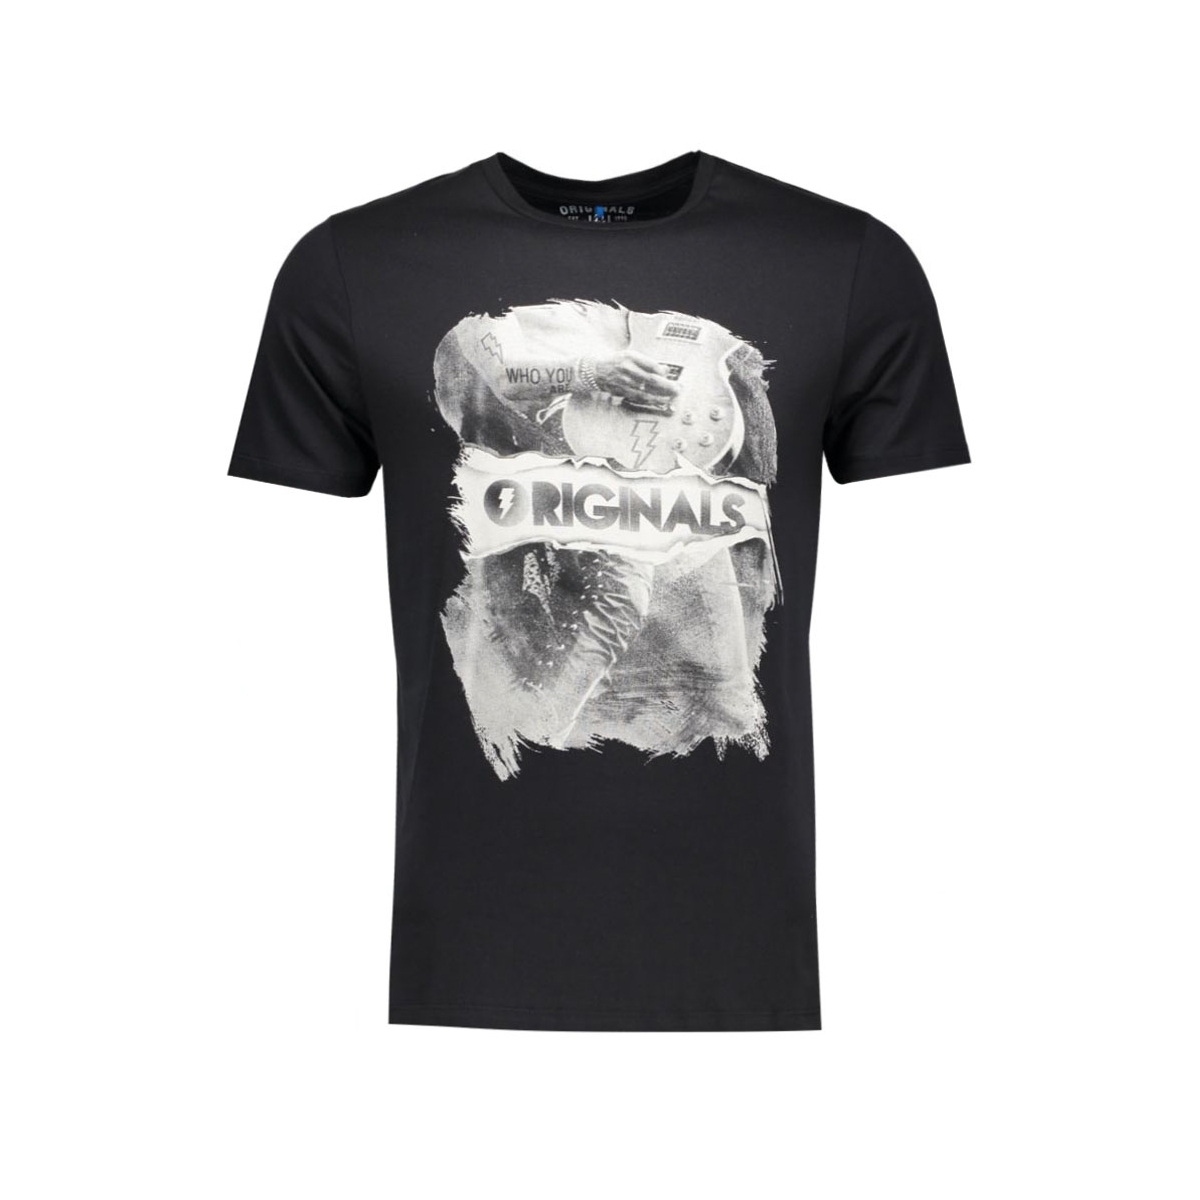 jorcoated tee ss crew neck 12112544 jack & jones t-shirt black